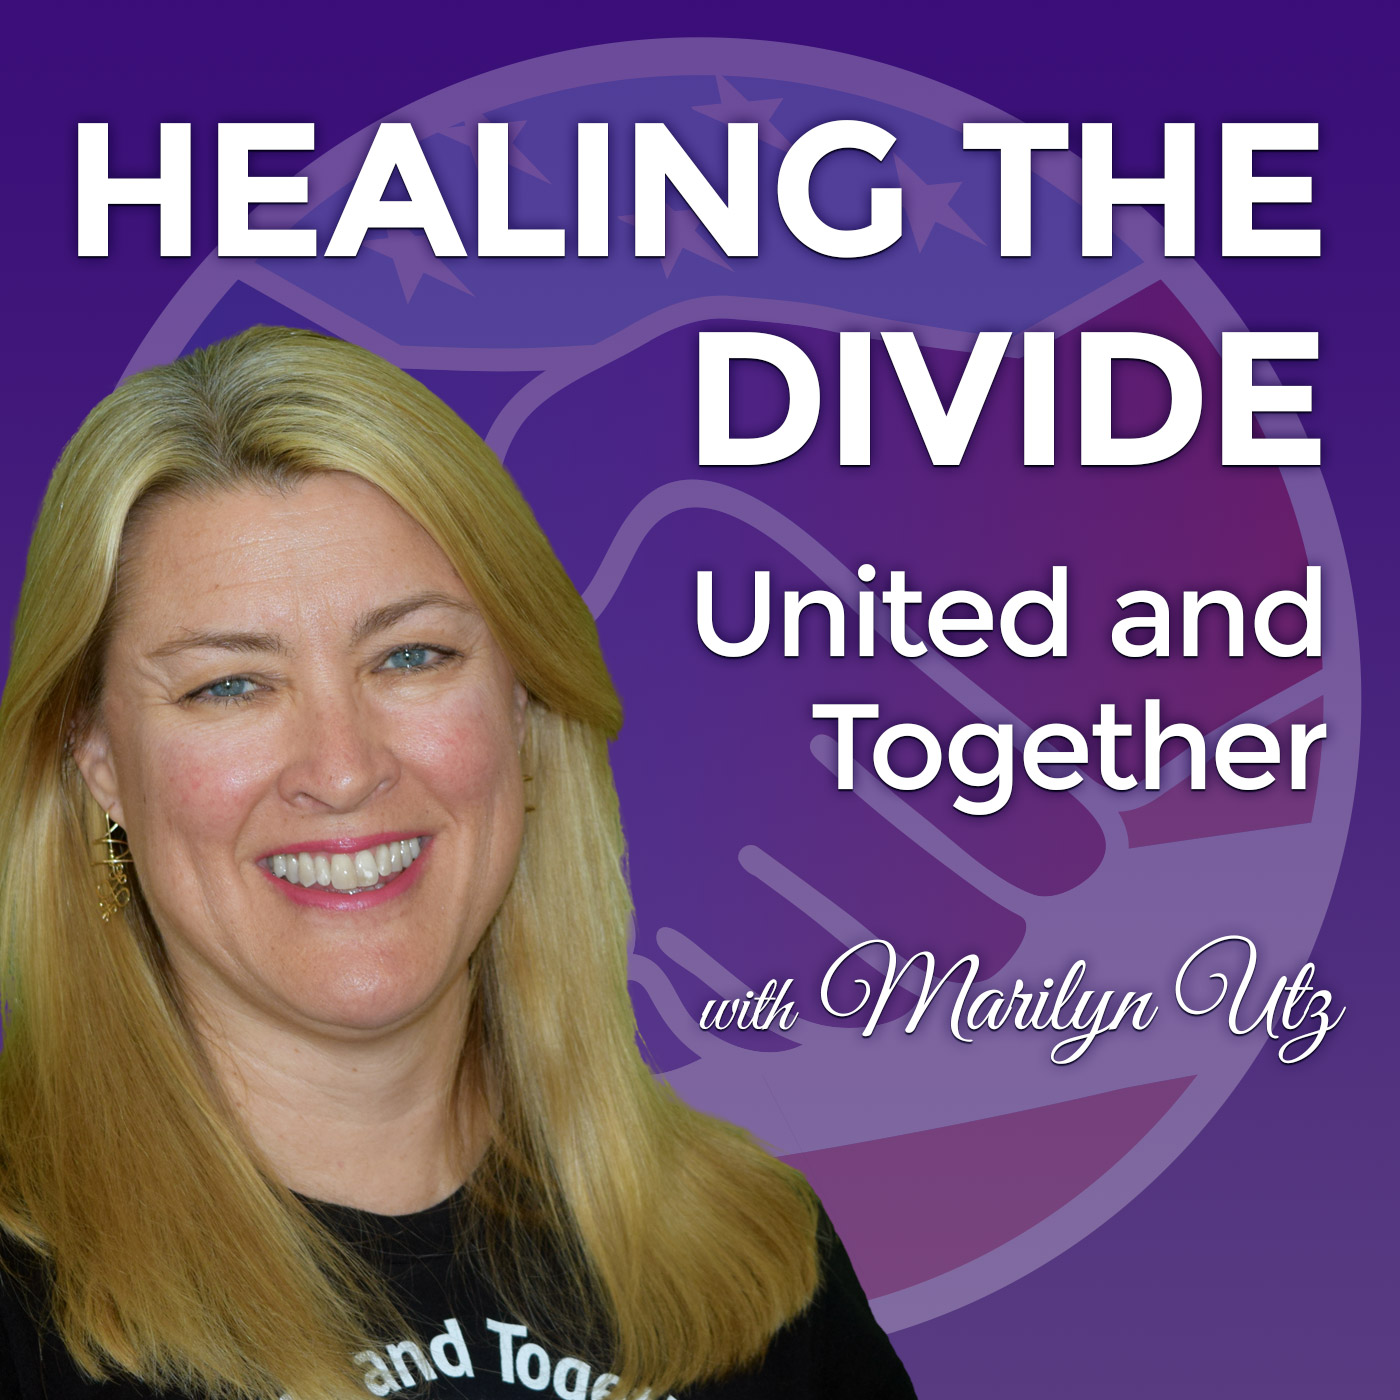 Healing the Divide - United and Together